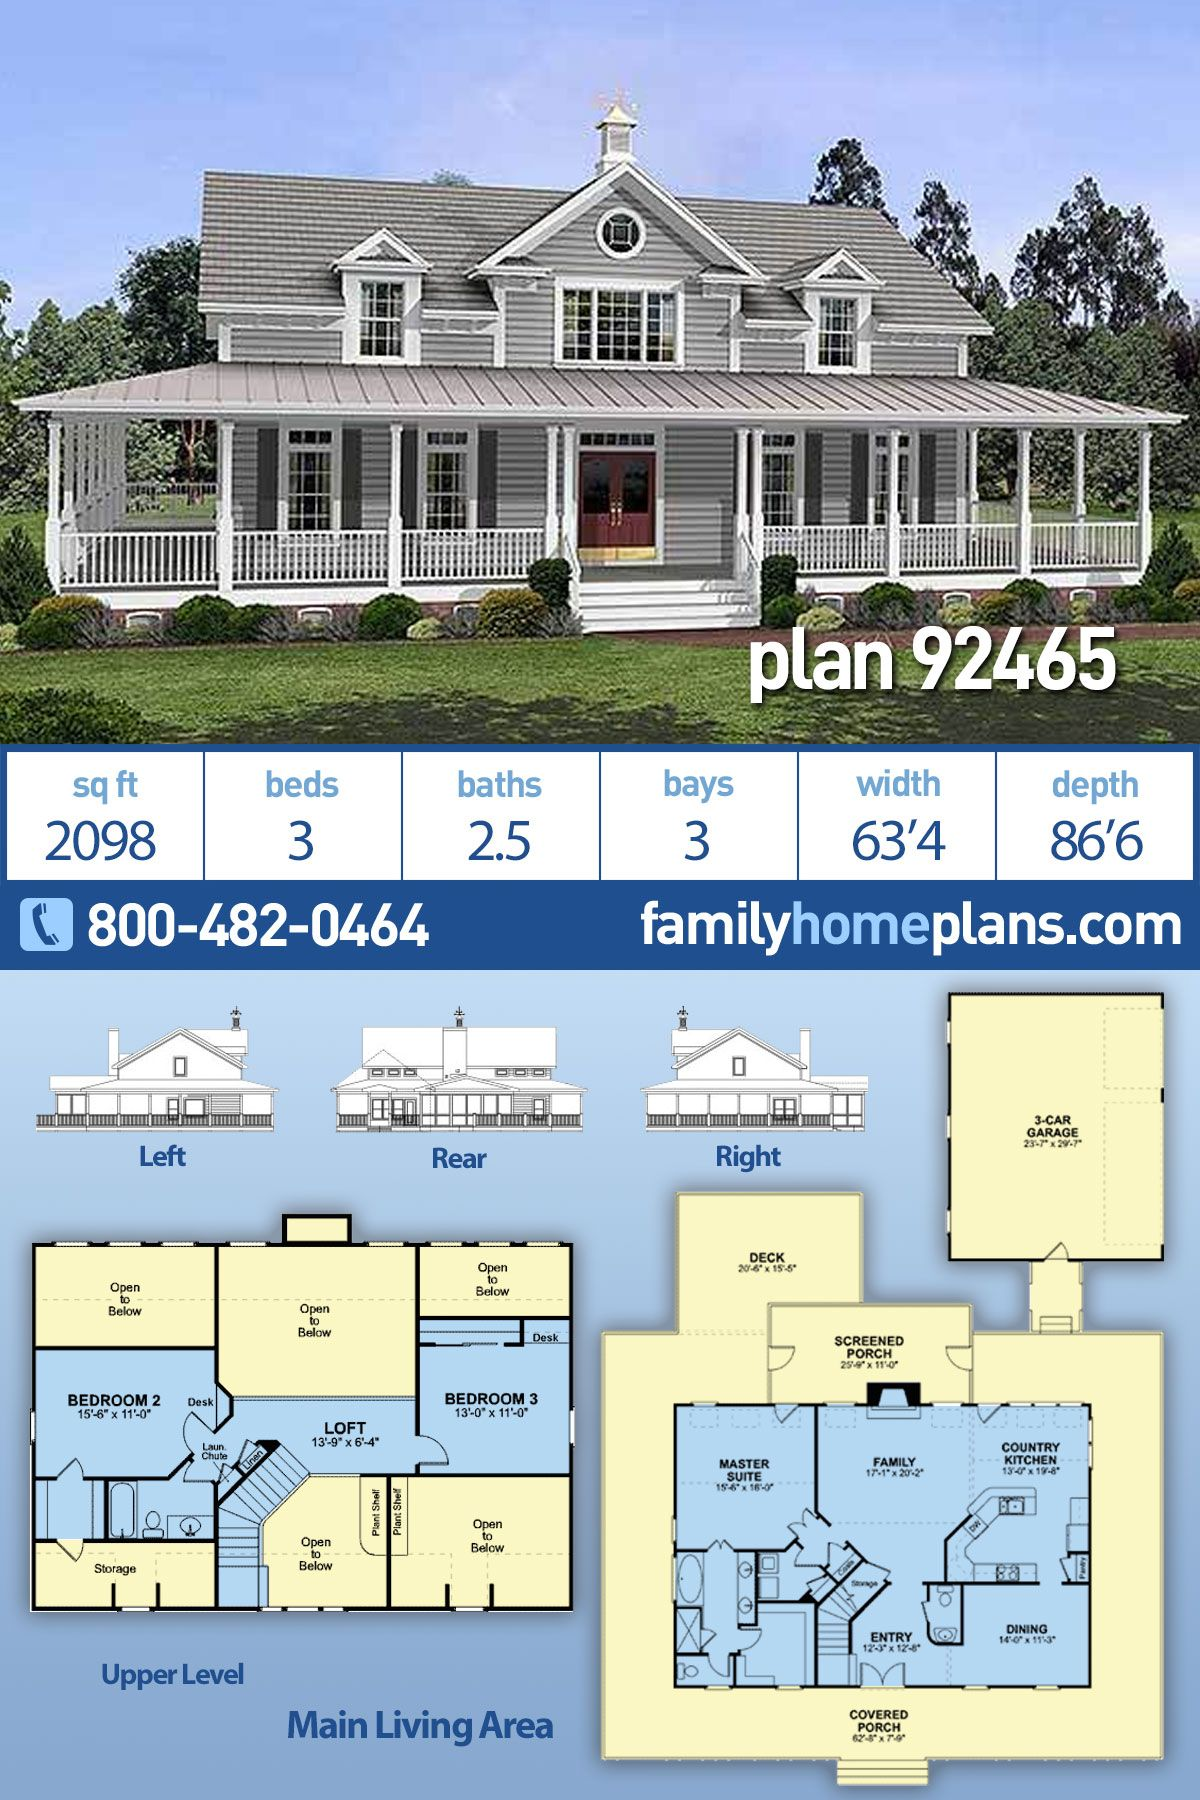 Southern Style House Plan 92465 With 3 Bed 3 Bath 3 Car Garage Porch House Plans Country House Plans Southern Style House Plans